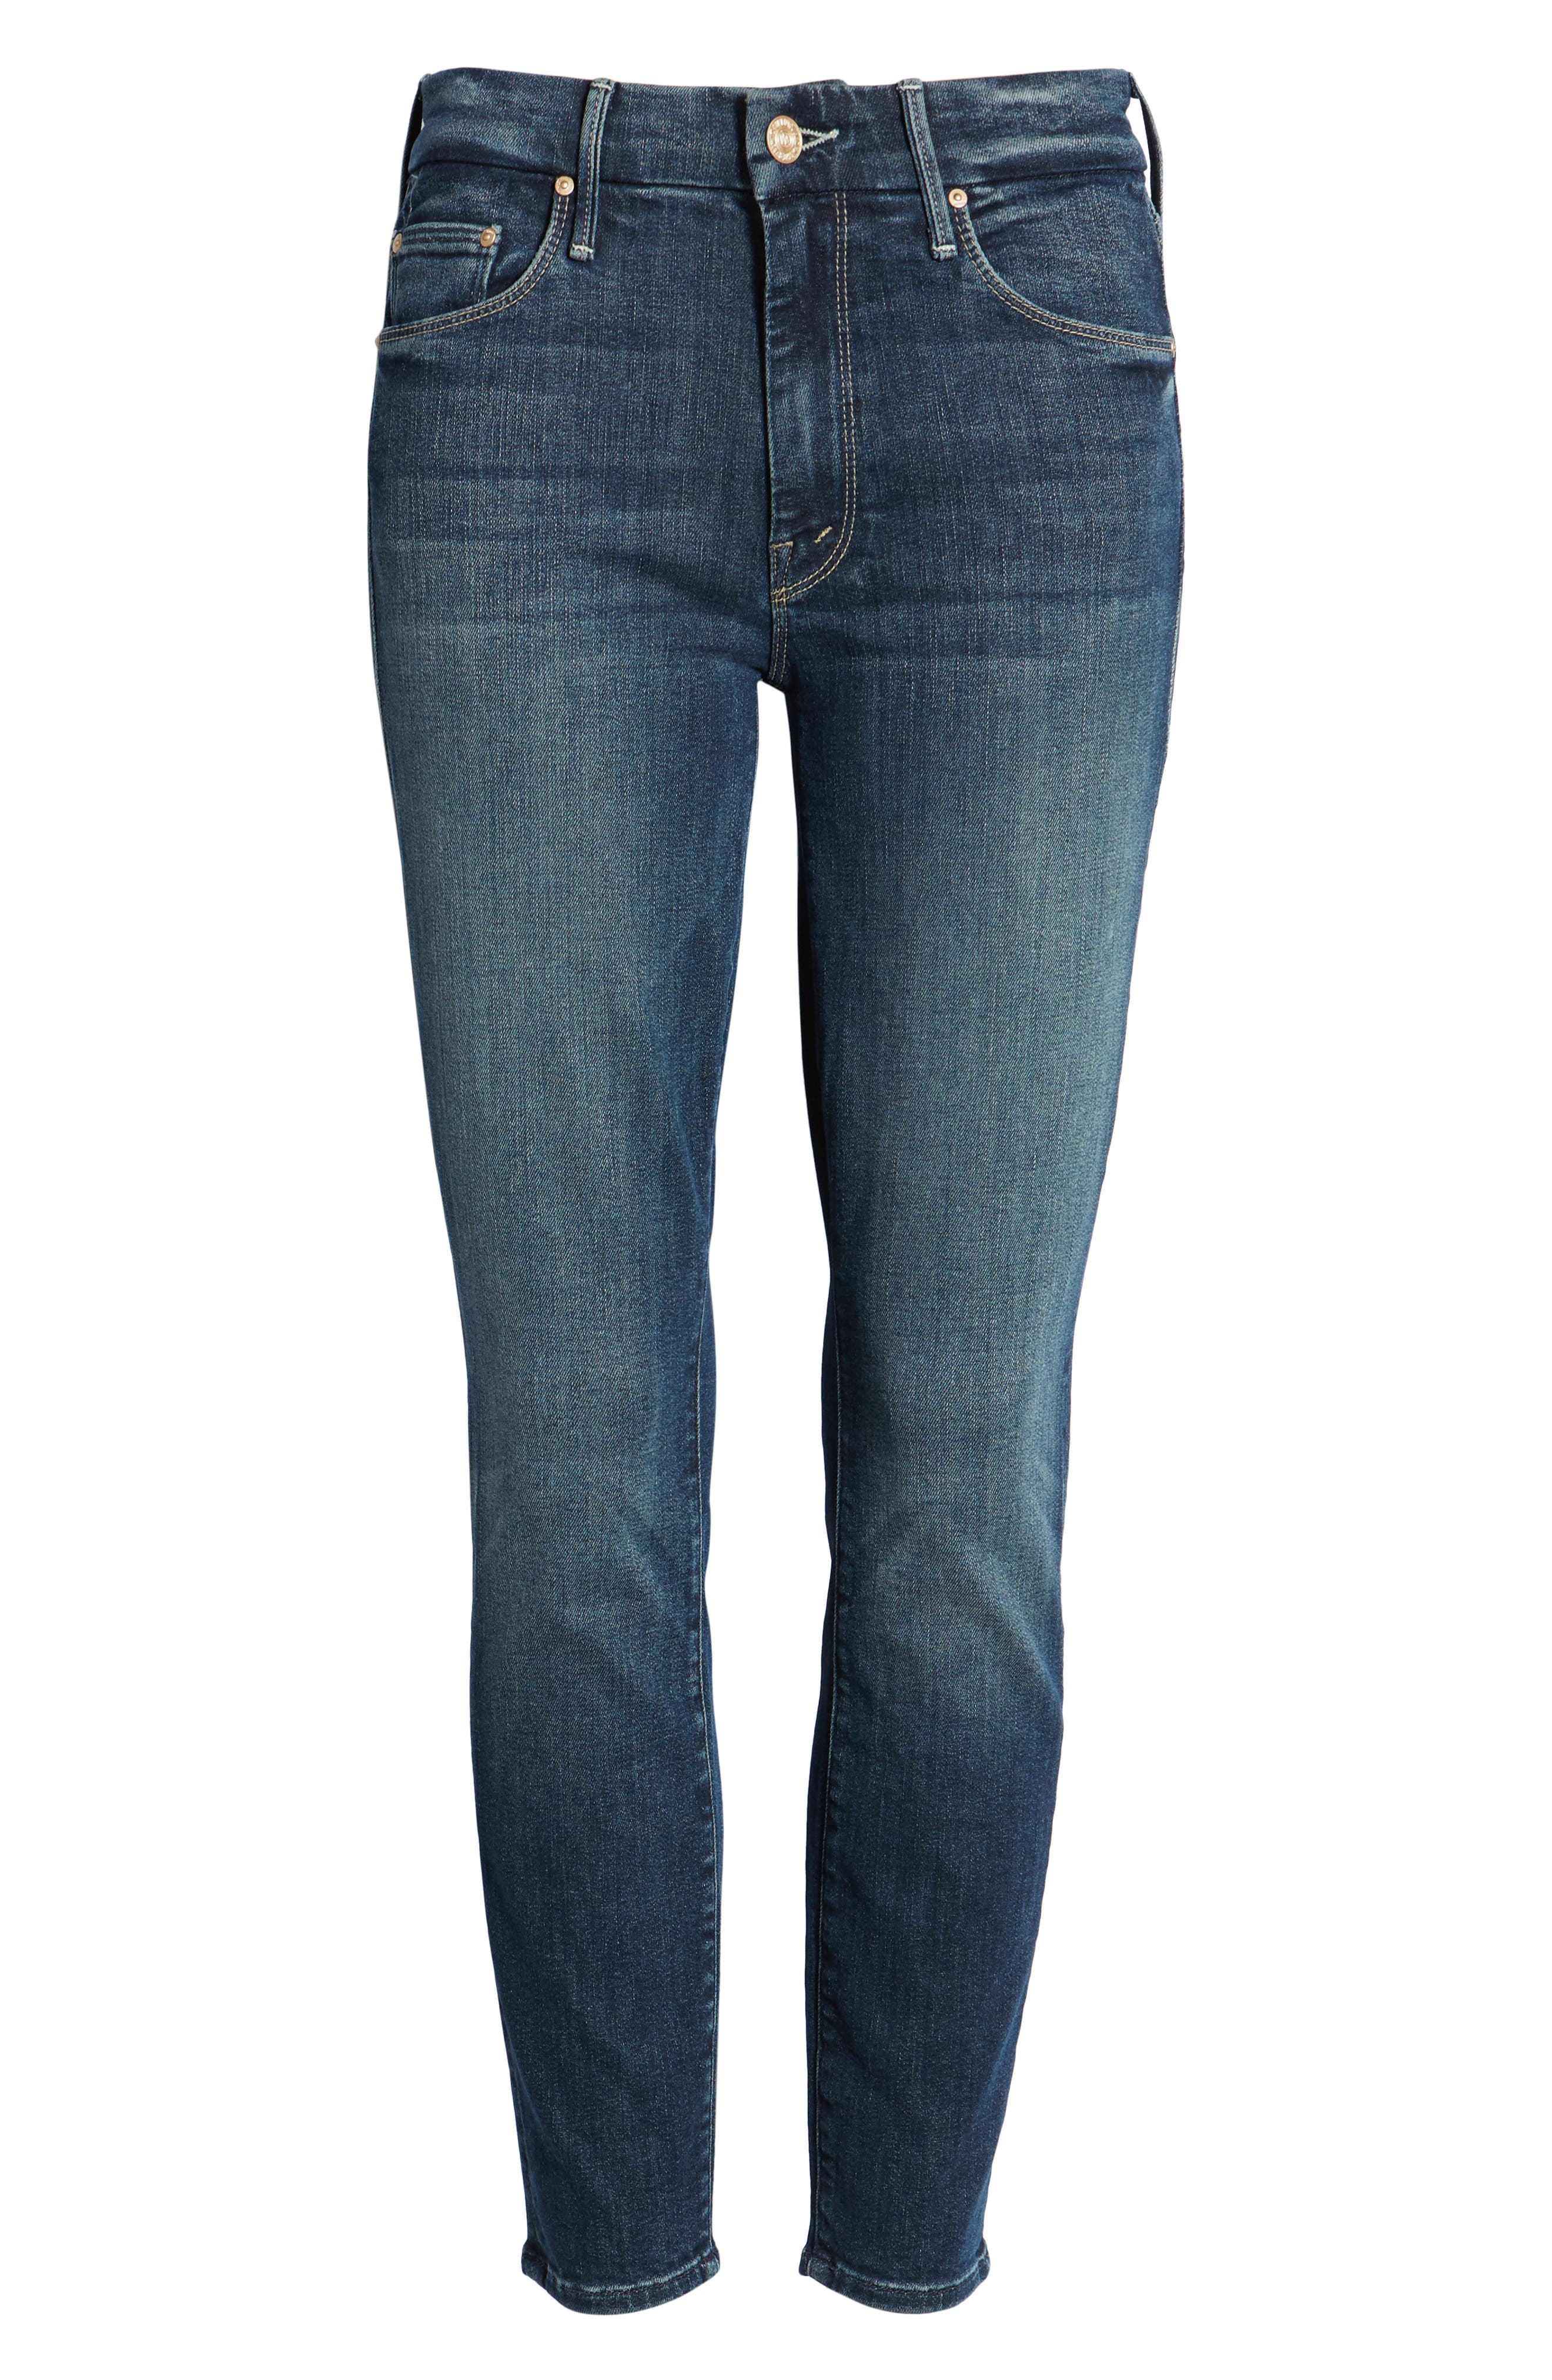 MOTHER, 'The Looker' Crop Skinny Jeans, Alternate thumbnail 7, color, ON THE EDGE